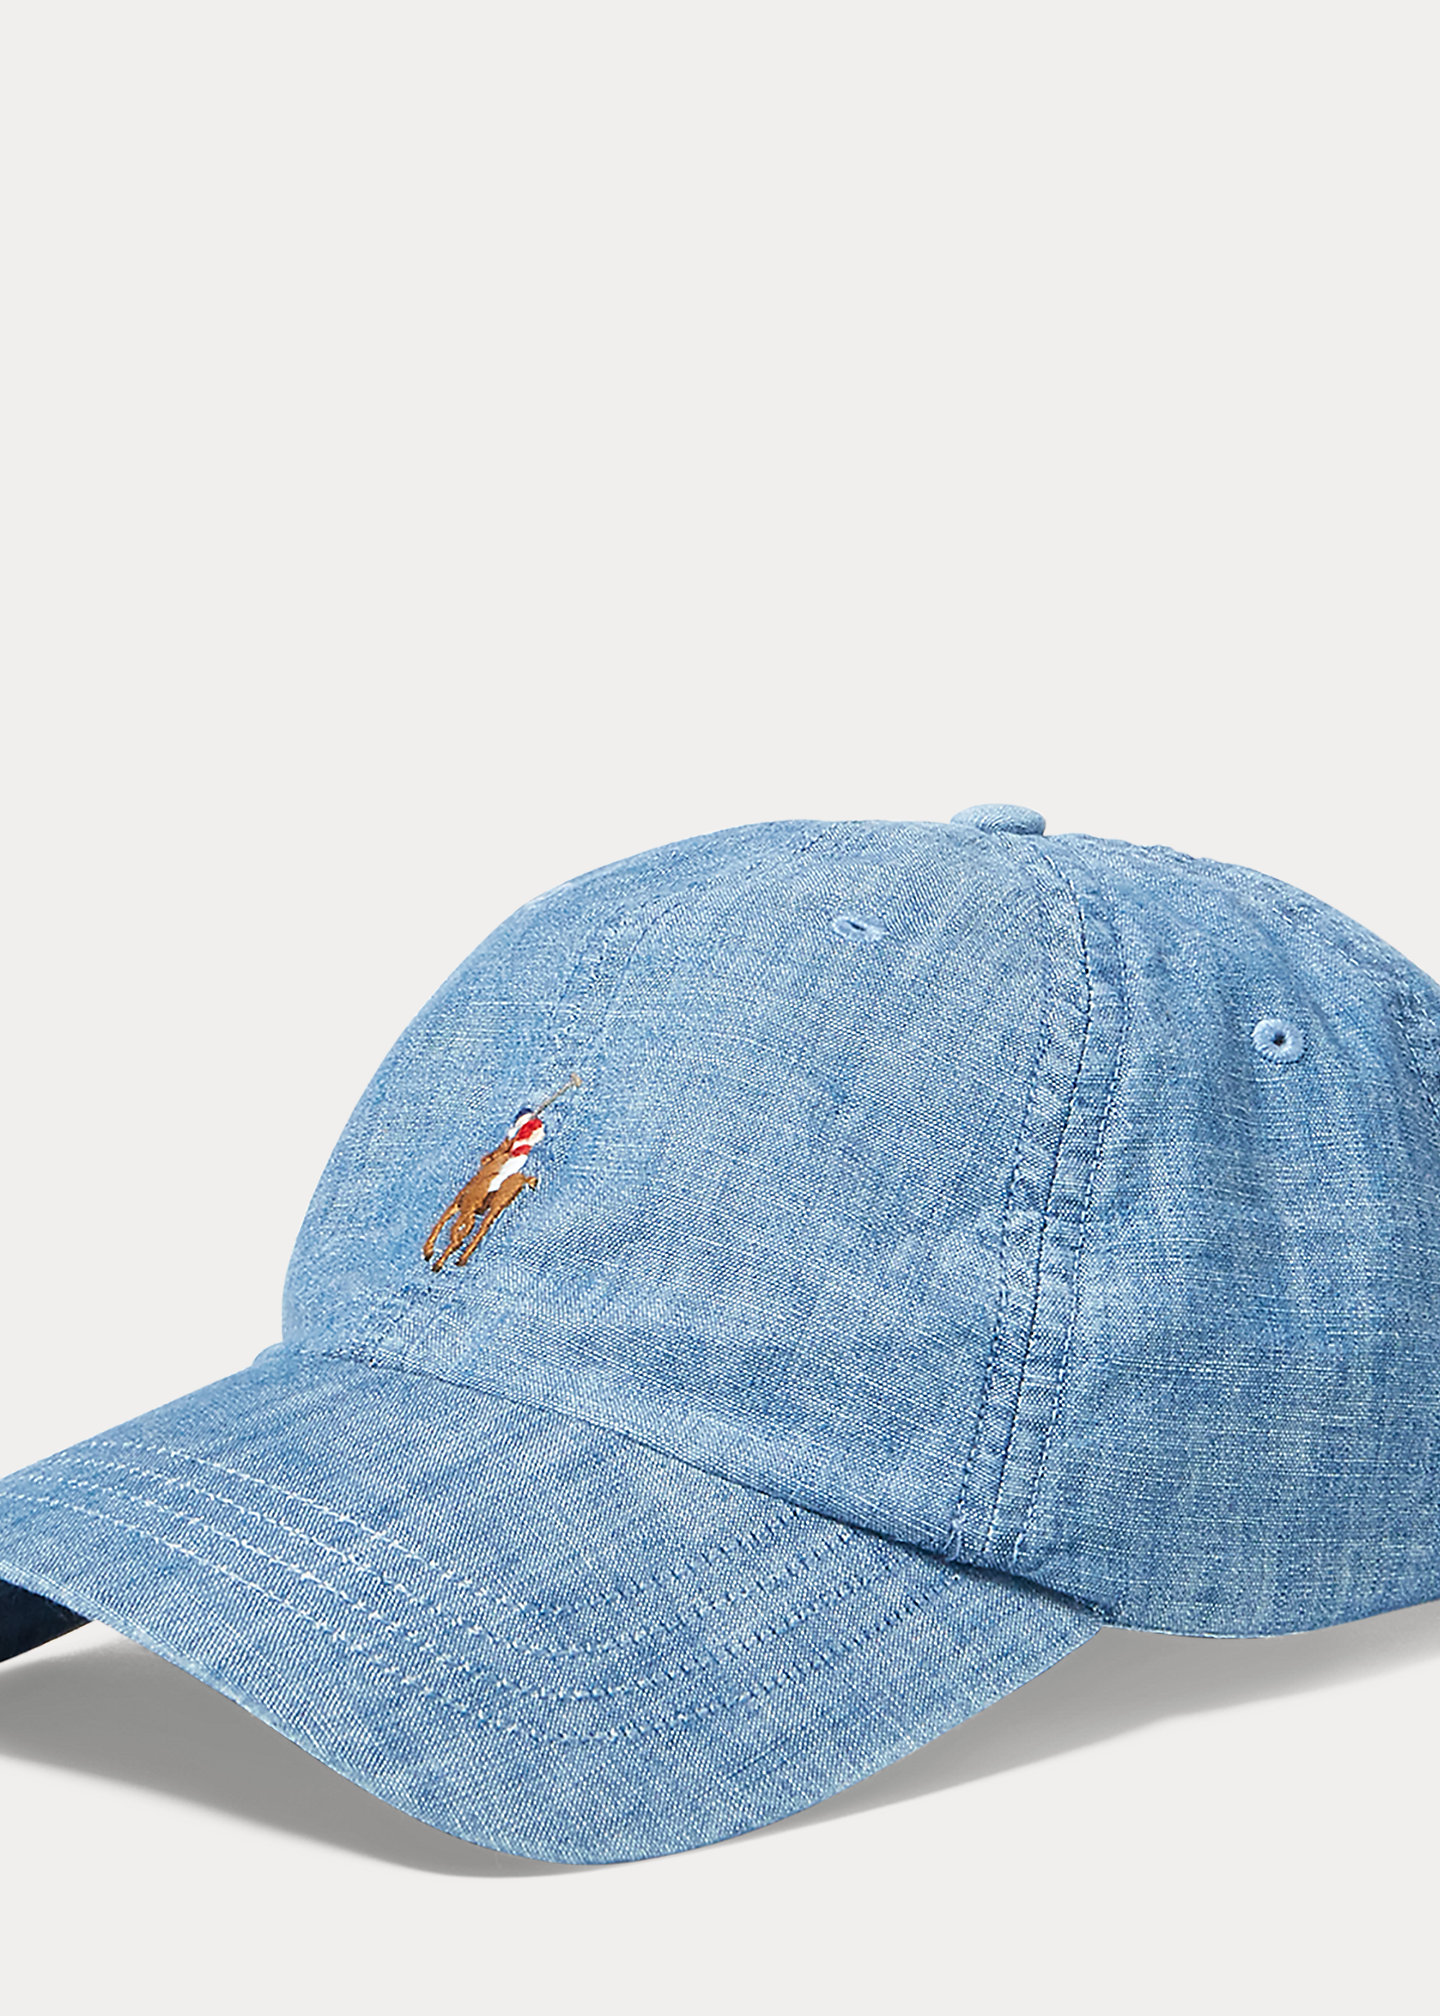 Polo Ralph Lauren Chambray Sports Cap 1